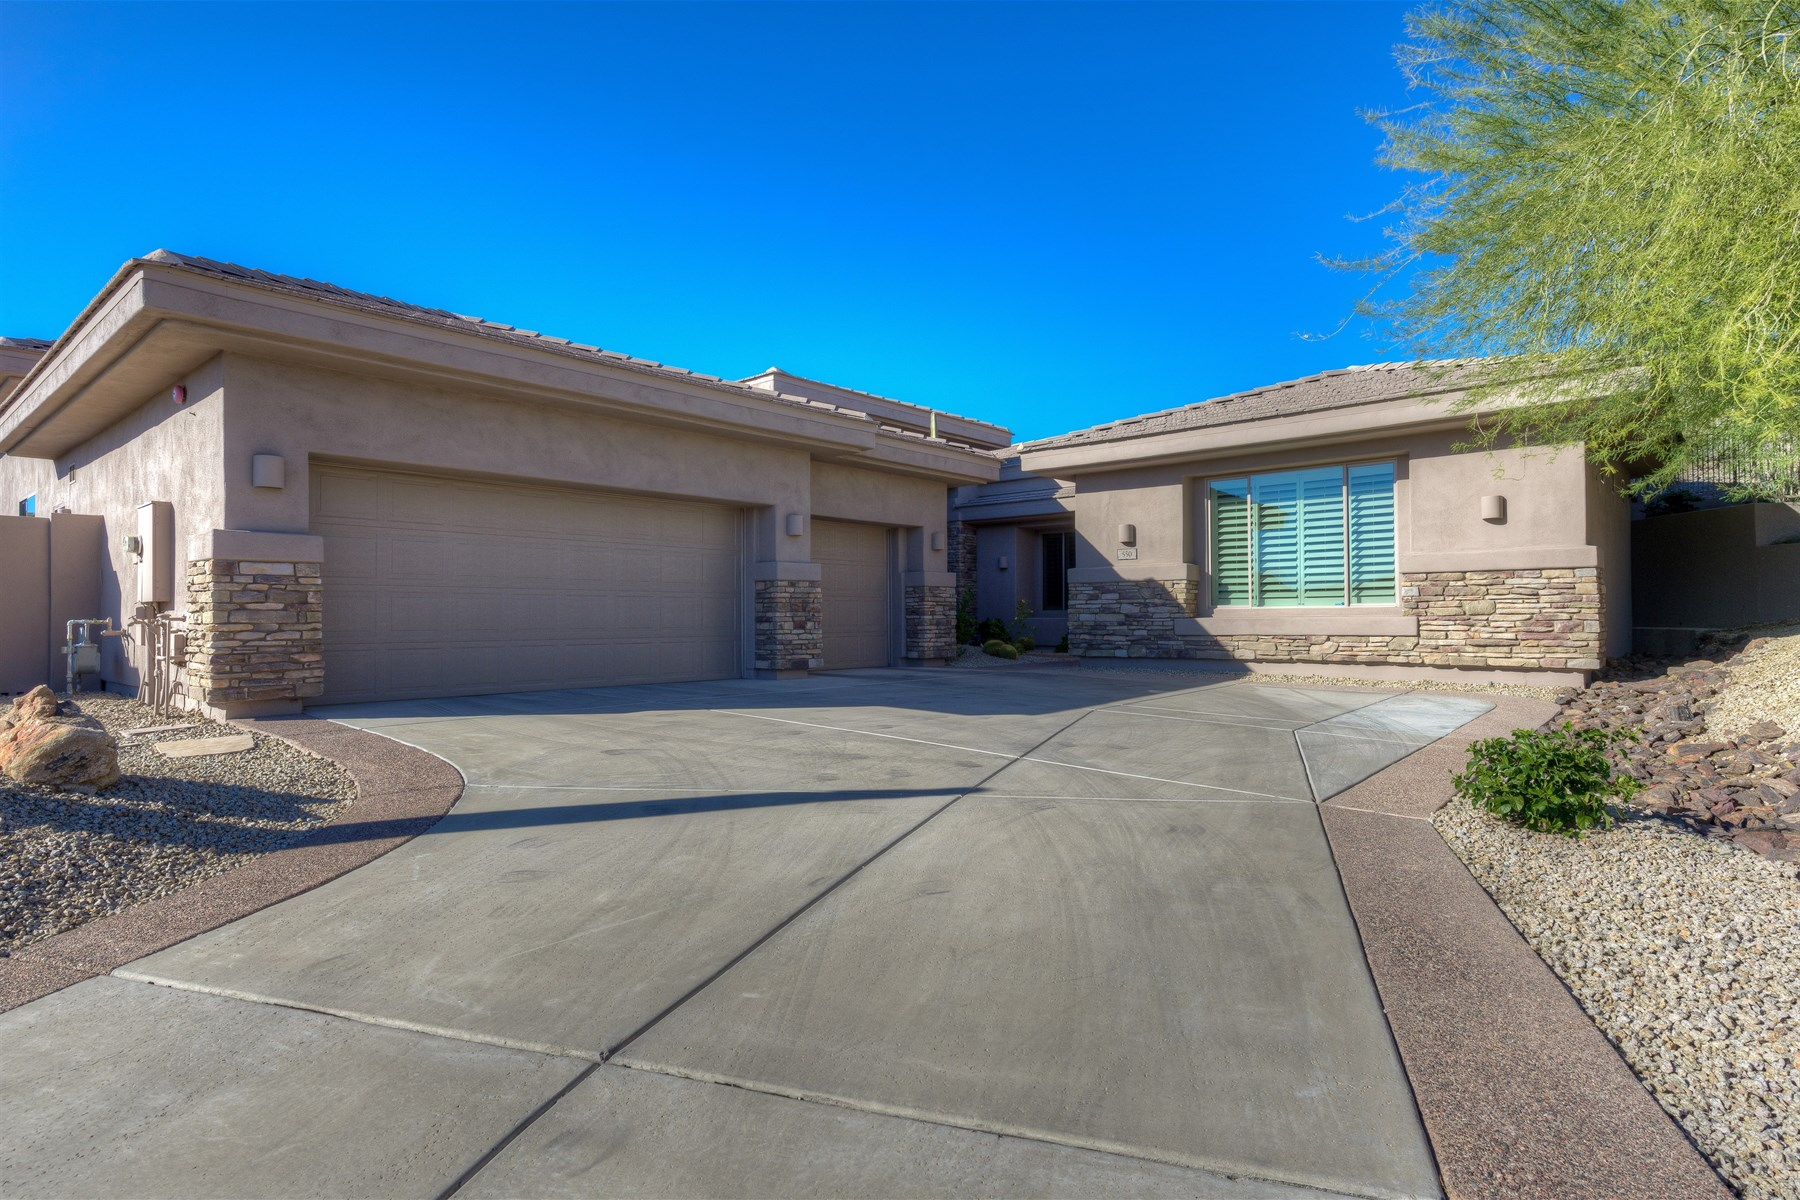 Single Family Home for Sale at Fabulous, semi-custom home in coveted Whistling Rock 550 E Mountain Sage Dr Phoenix, Arizona 85048 United States